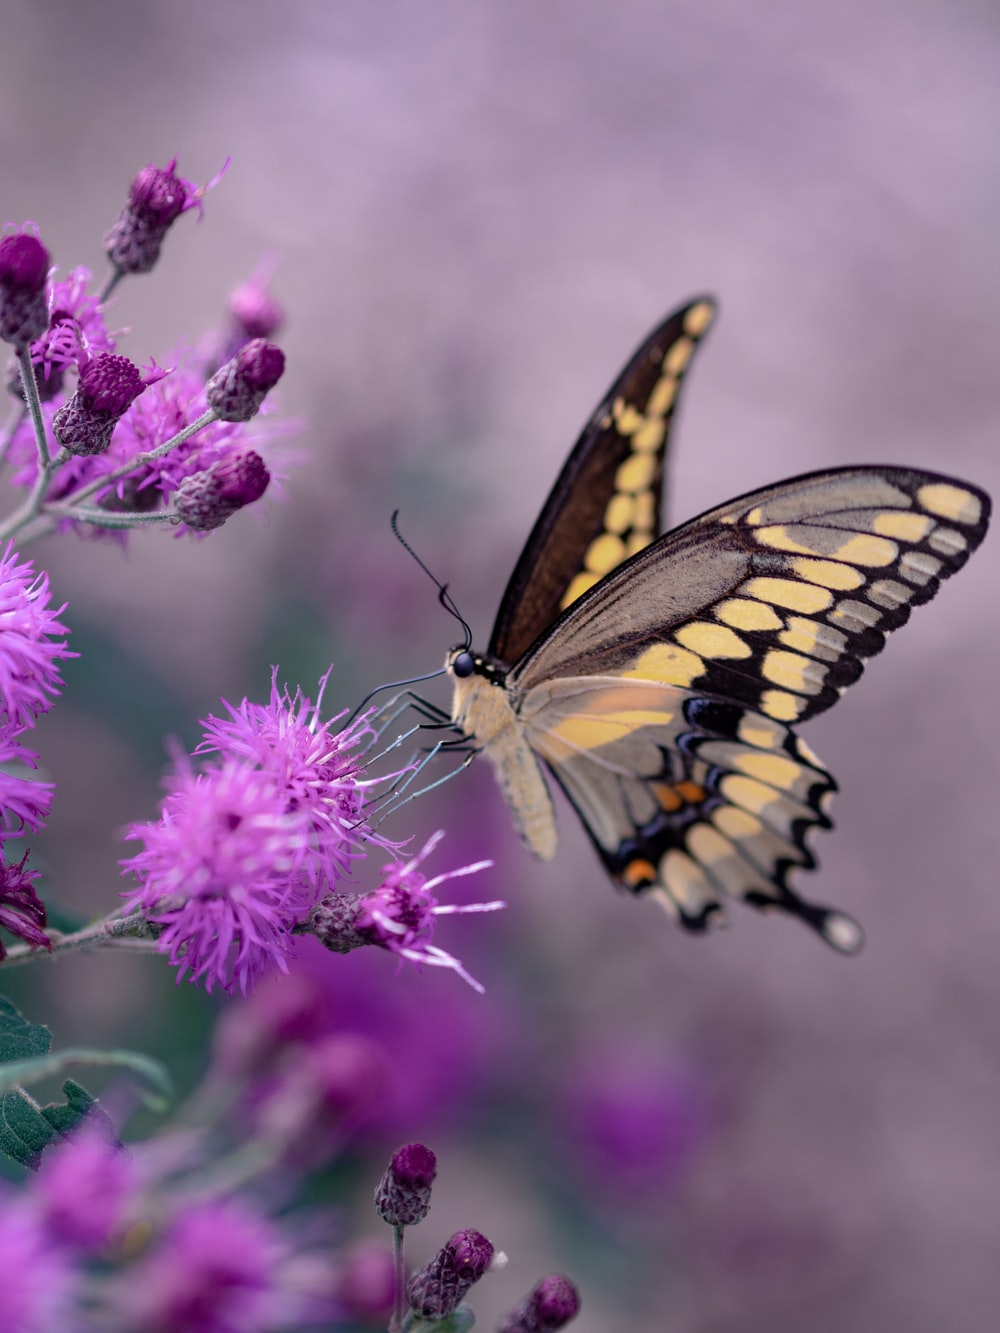 100 butterfly pictures hq download free images on unsplash shallow focus photography of yellow and black butterfly izmirmasajfo